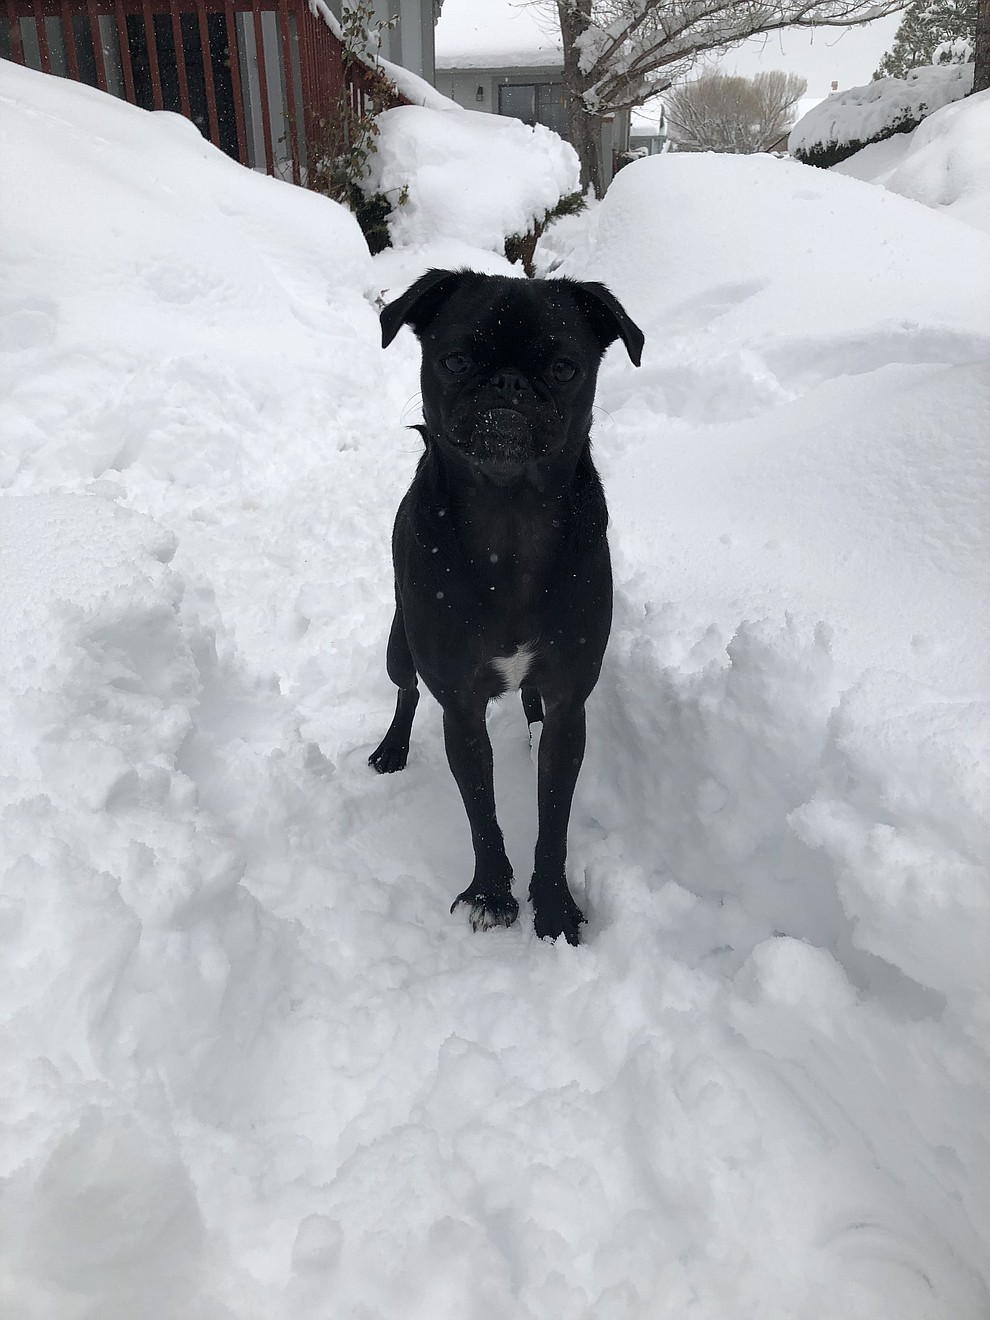 Kiki the smiling black pug experiencing her first time in the snow